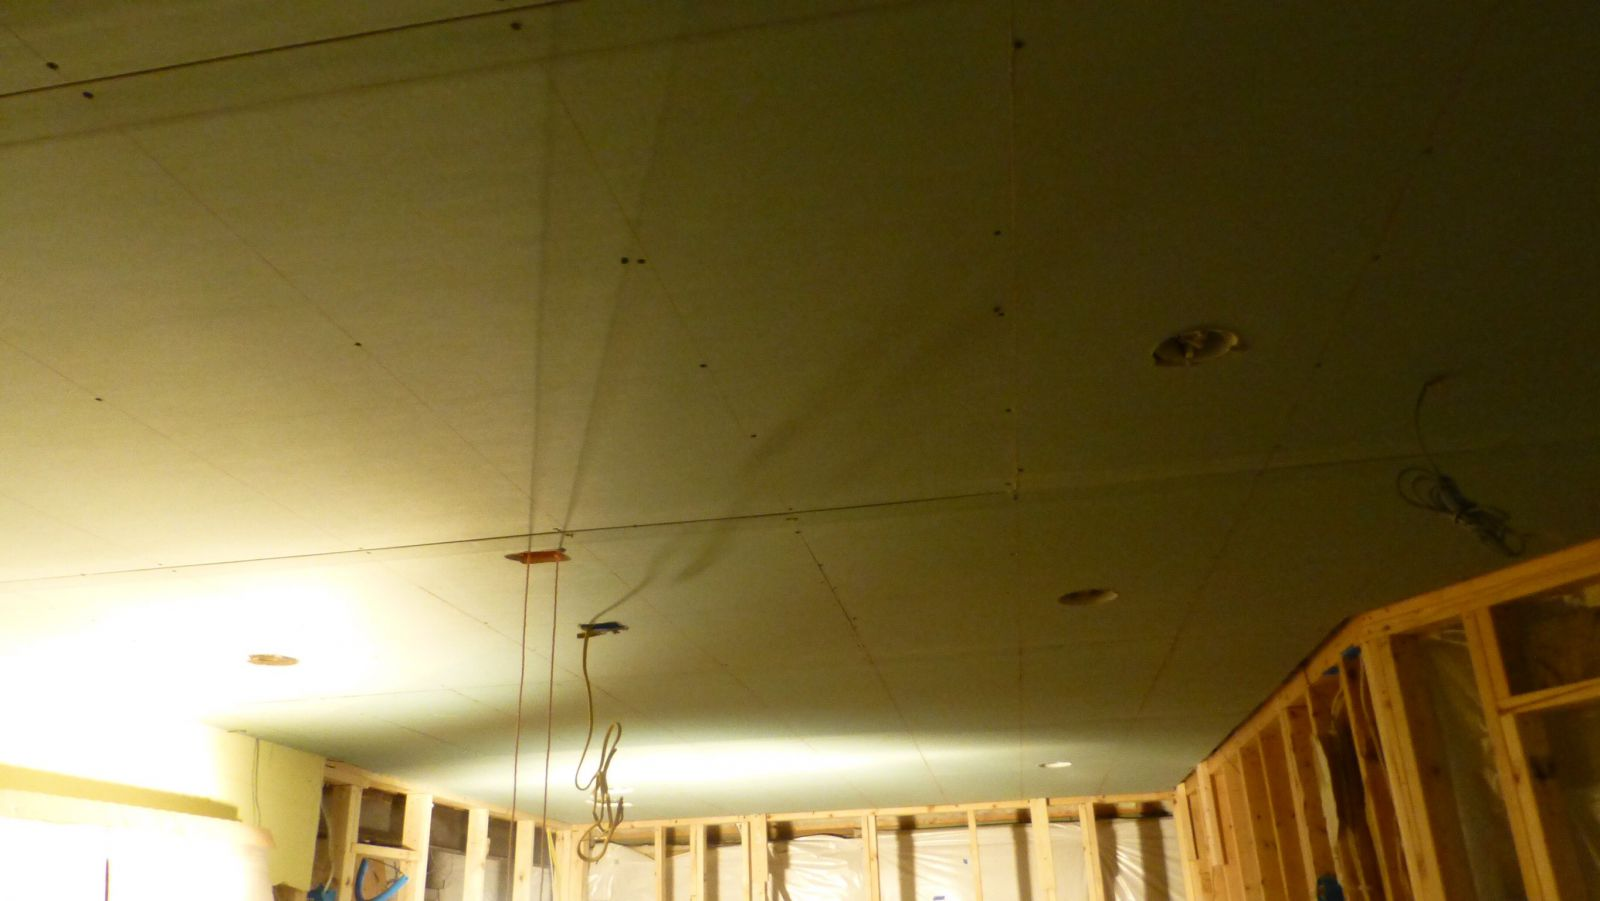 bedroom fix out depot channels remodel fur install attic is furred wooden for idea with how strips contemporary vs hat rectangle resilient what level uneven natural tufted modern ceiling brown home combine laser to furring drywall channel room meaning decor down